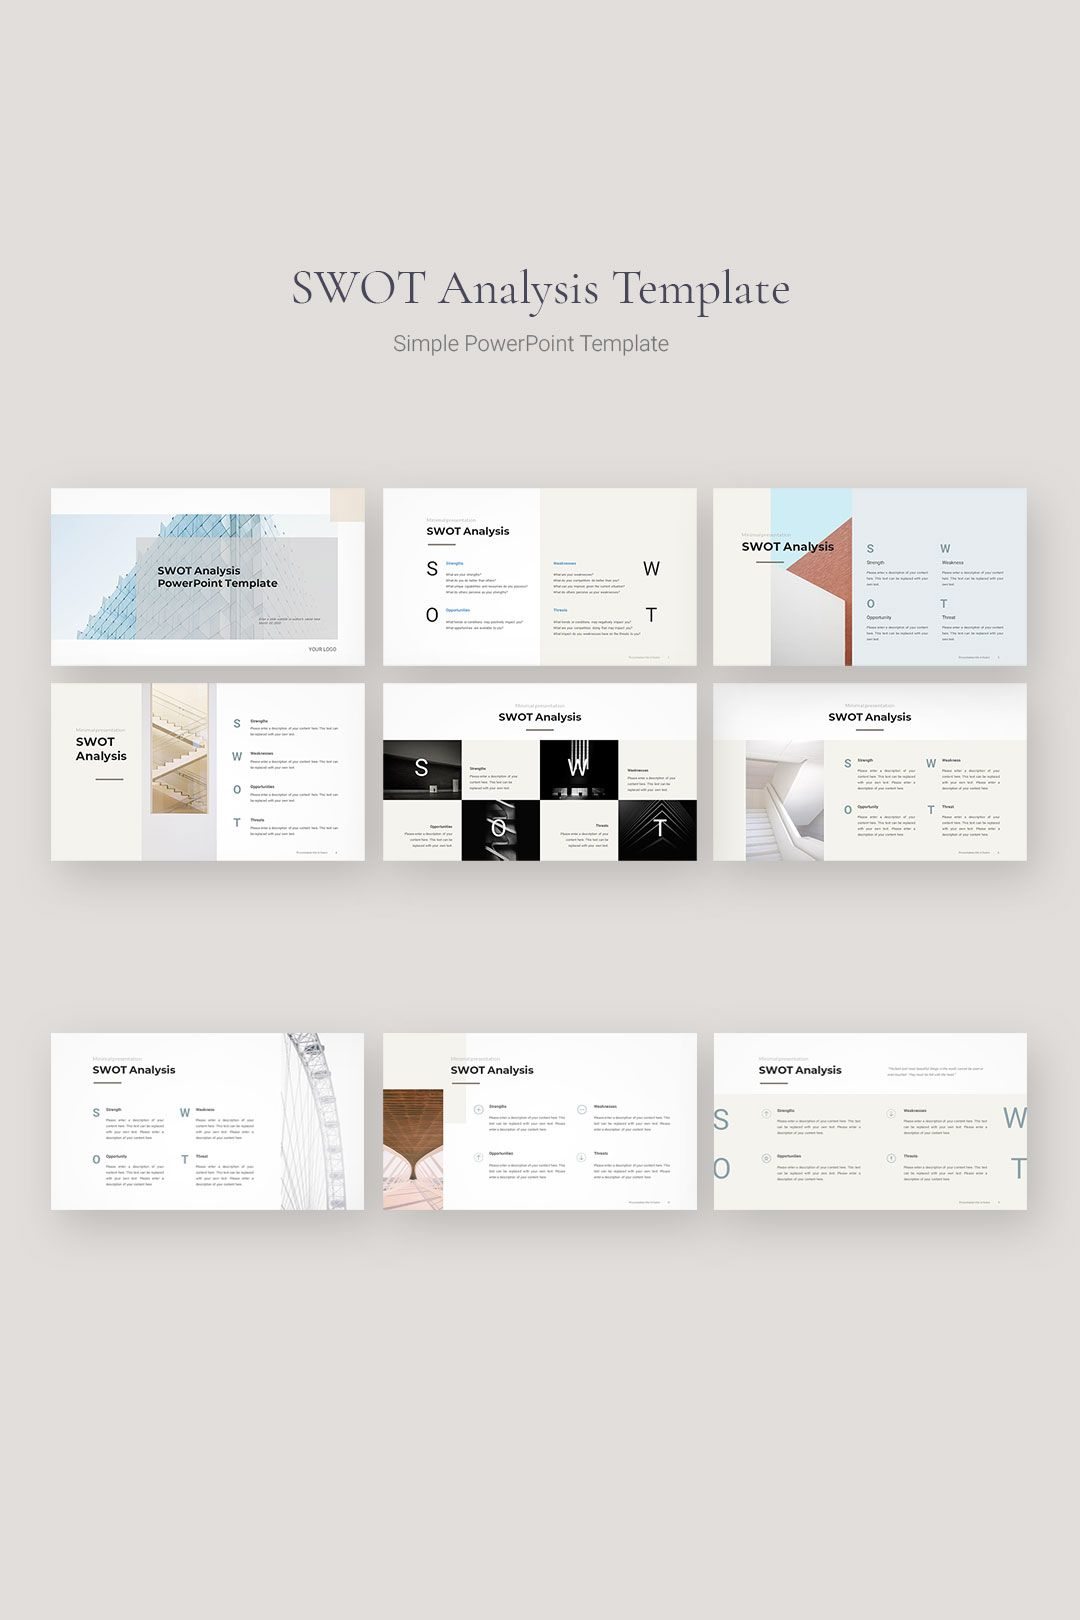 SWOT Analysis Template in 2020 (With images) Swot